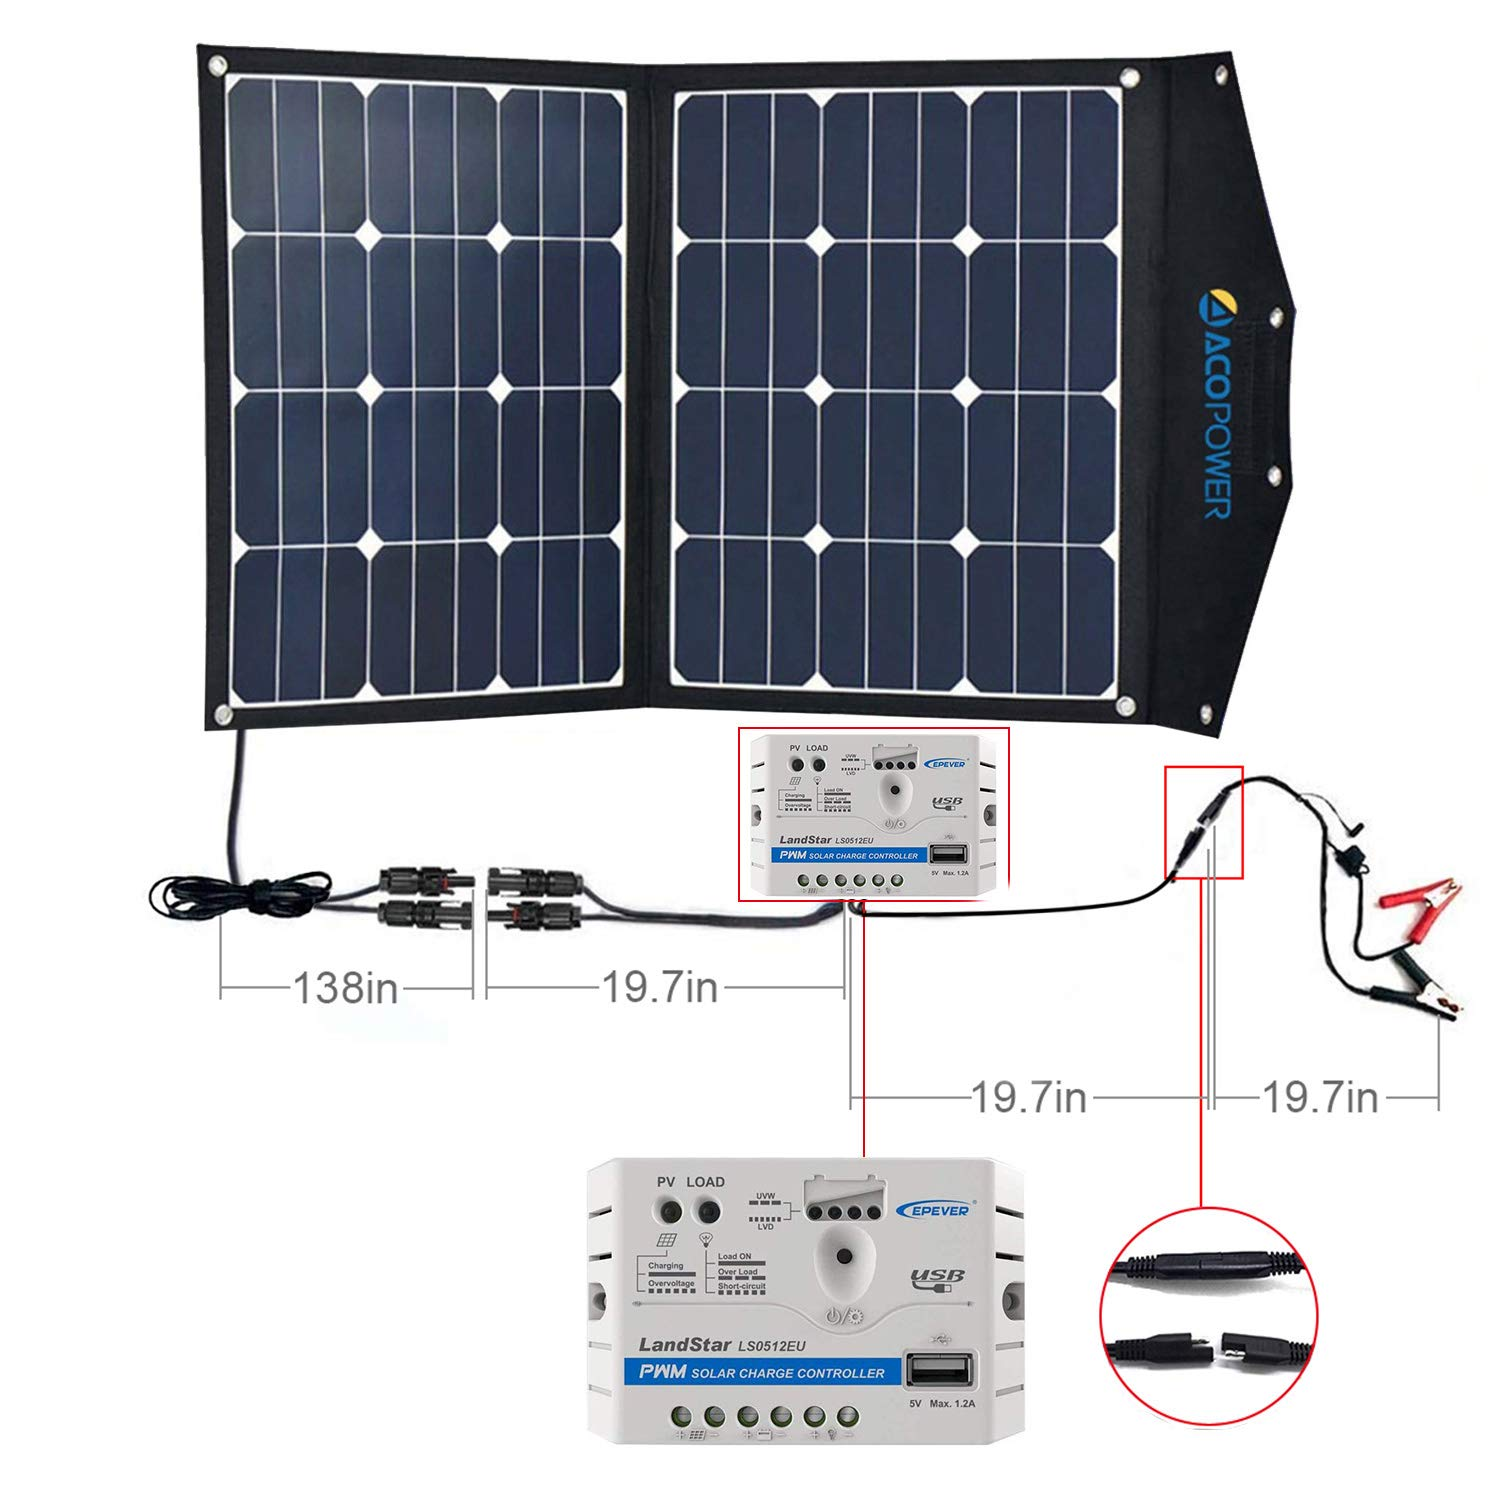 ACOPOWER 12V 70 Watt Foldable Solar Panel Kit; Portable Solar Charger Suitcase of 2x35W Monocrystalline Module & 5A Charge Controller for RV, Boats, Camping; w USB 5V Output as Phone Charger by ACOPOWER